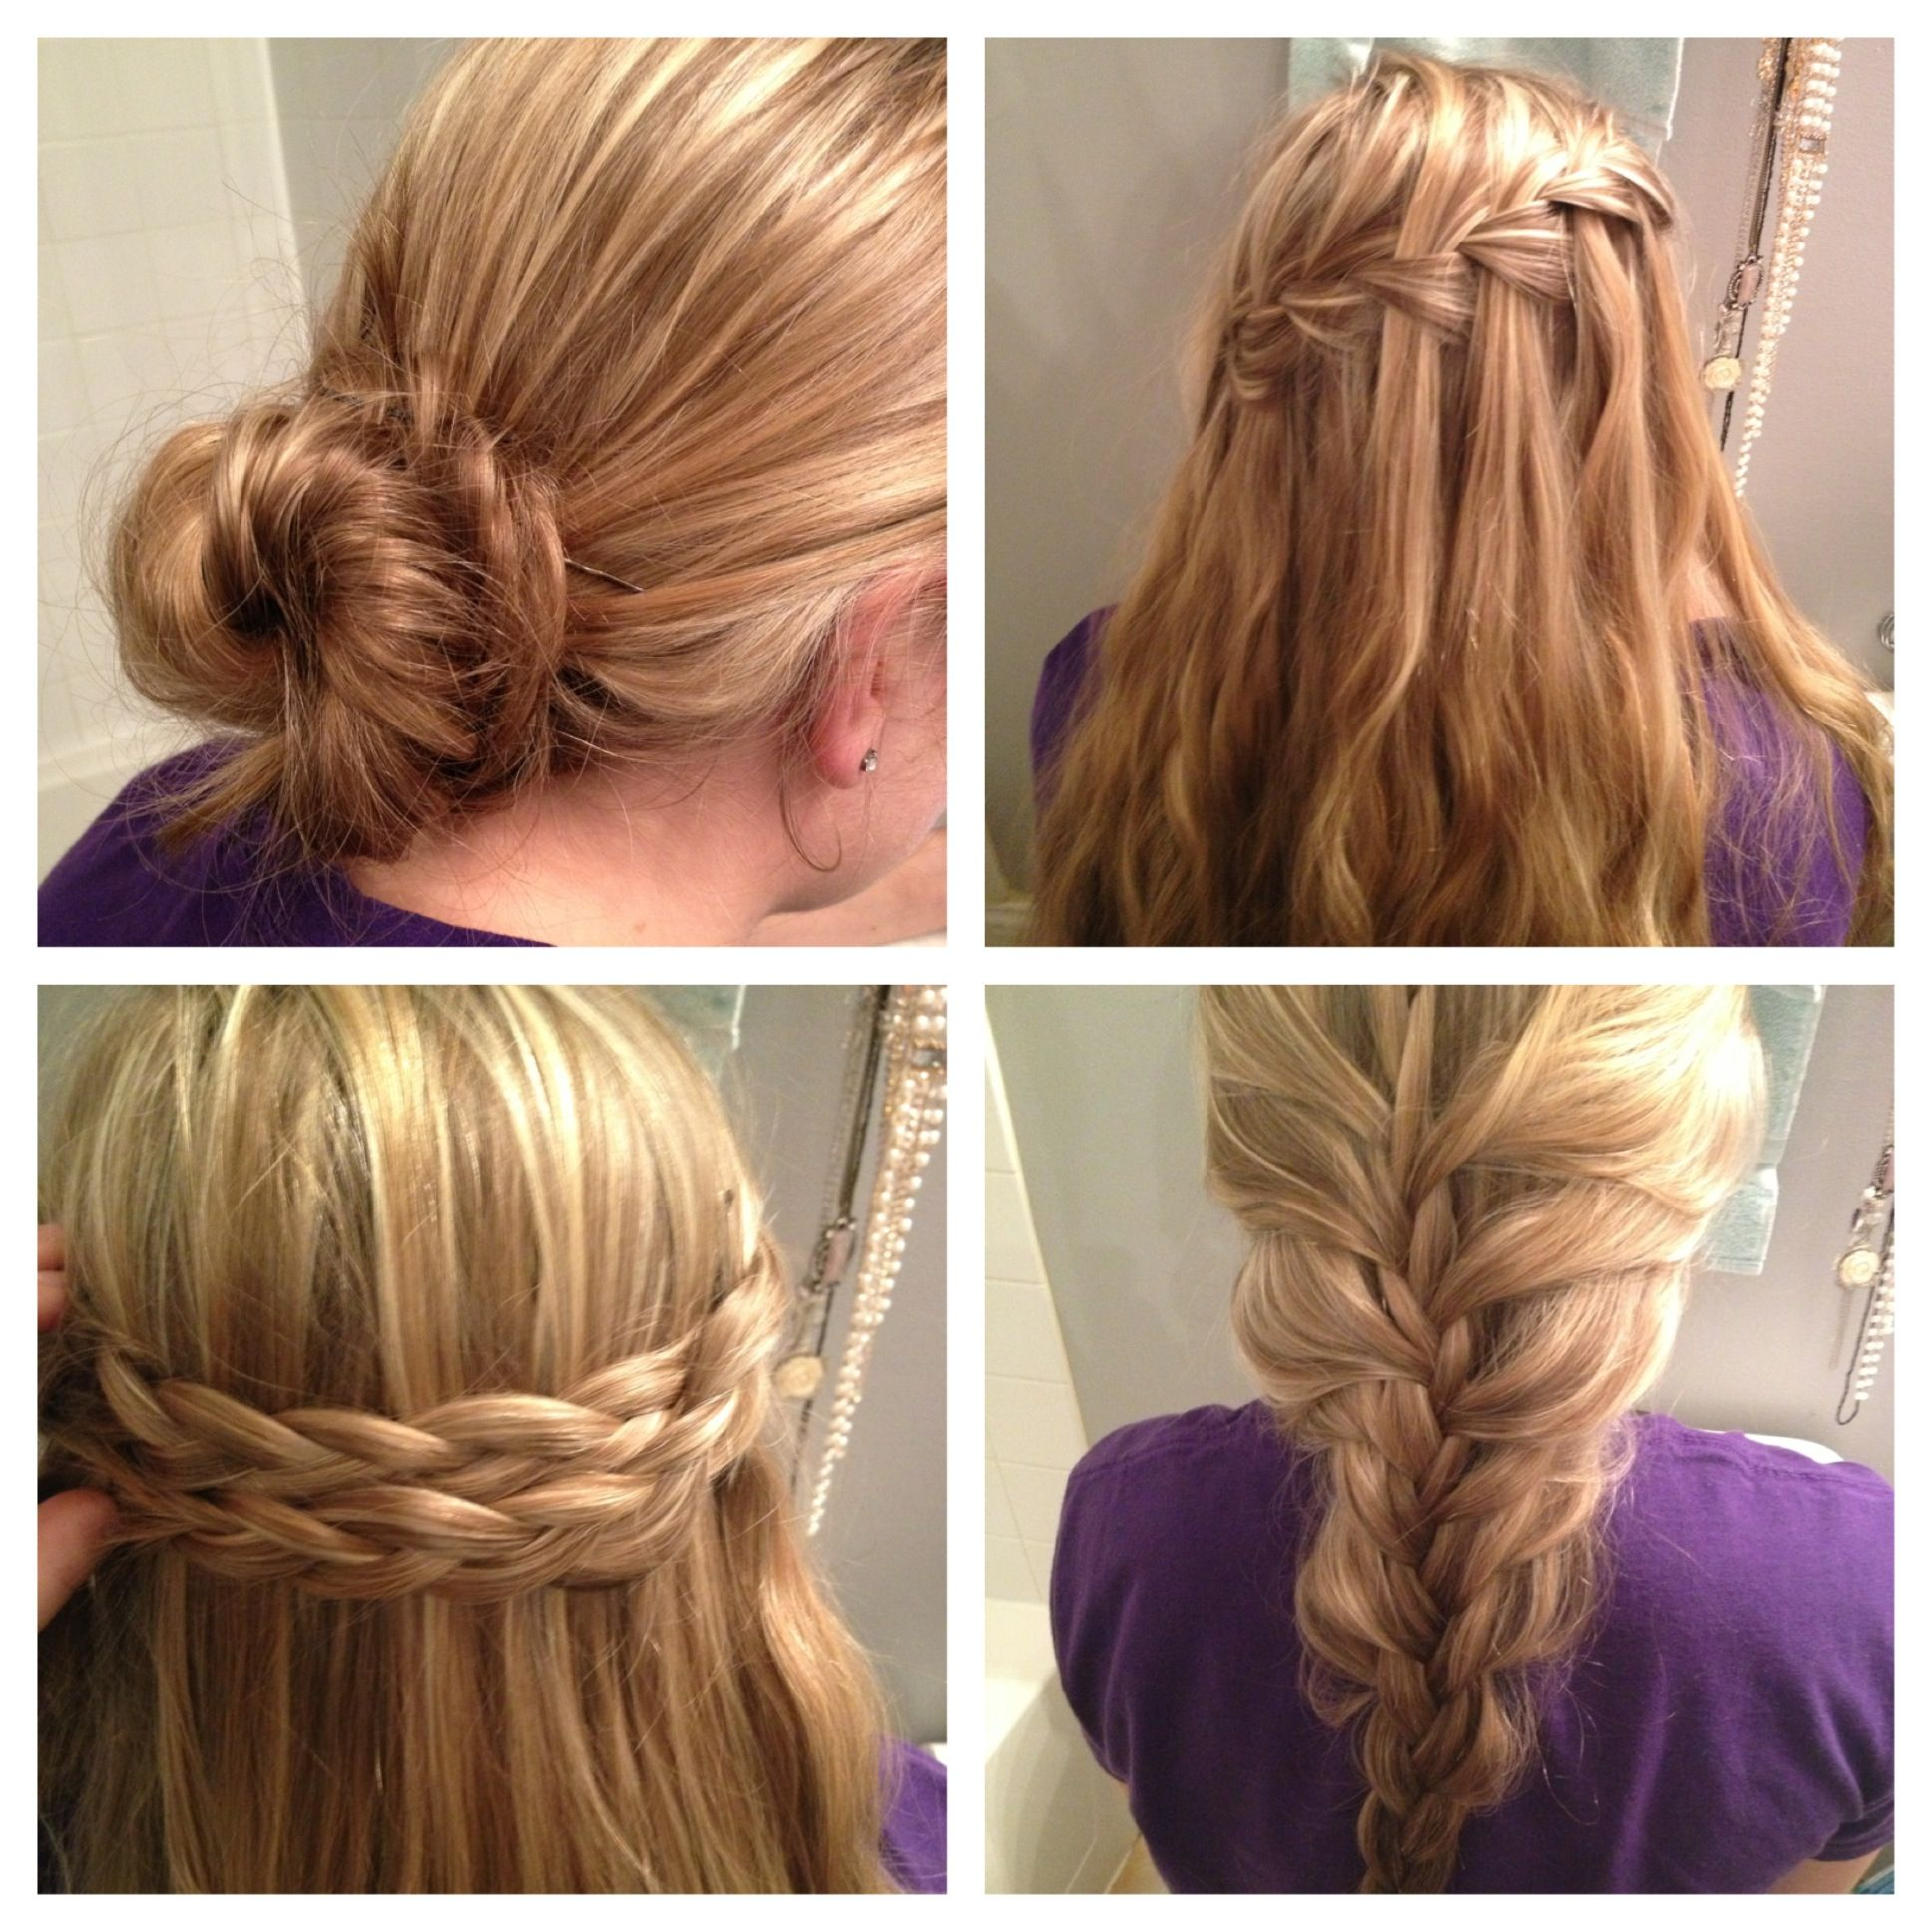 Hairstyles For Long Hair Without Heat : Easy no heat hairstyles Hair: Long Pinterest